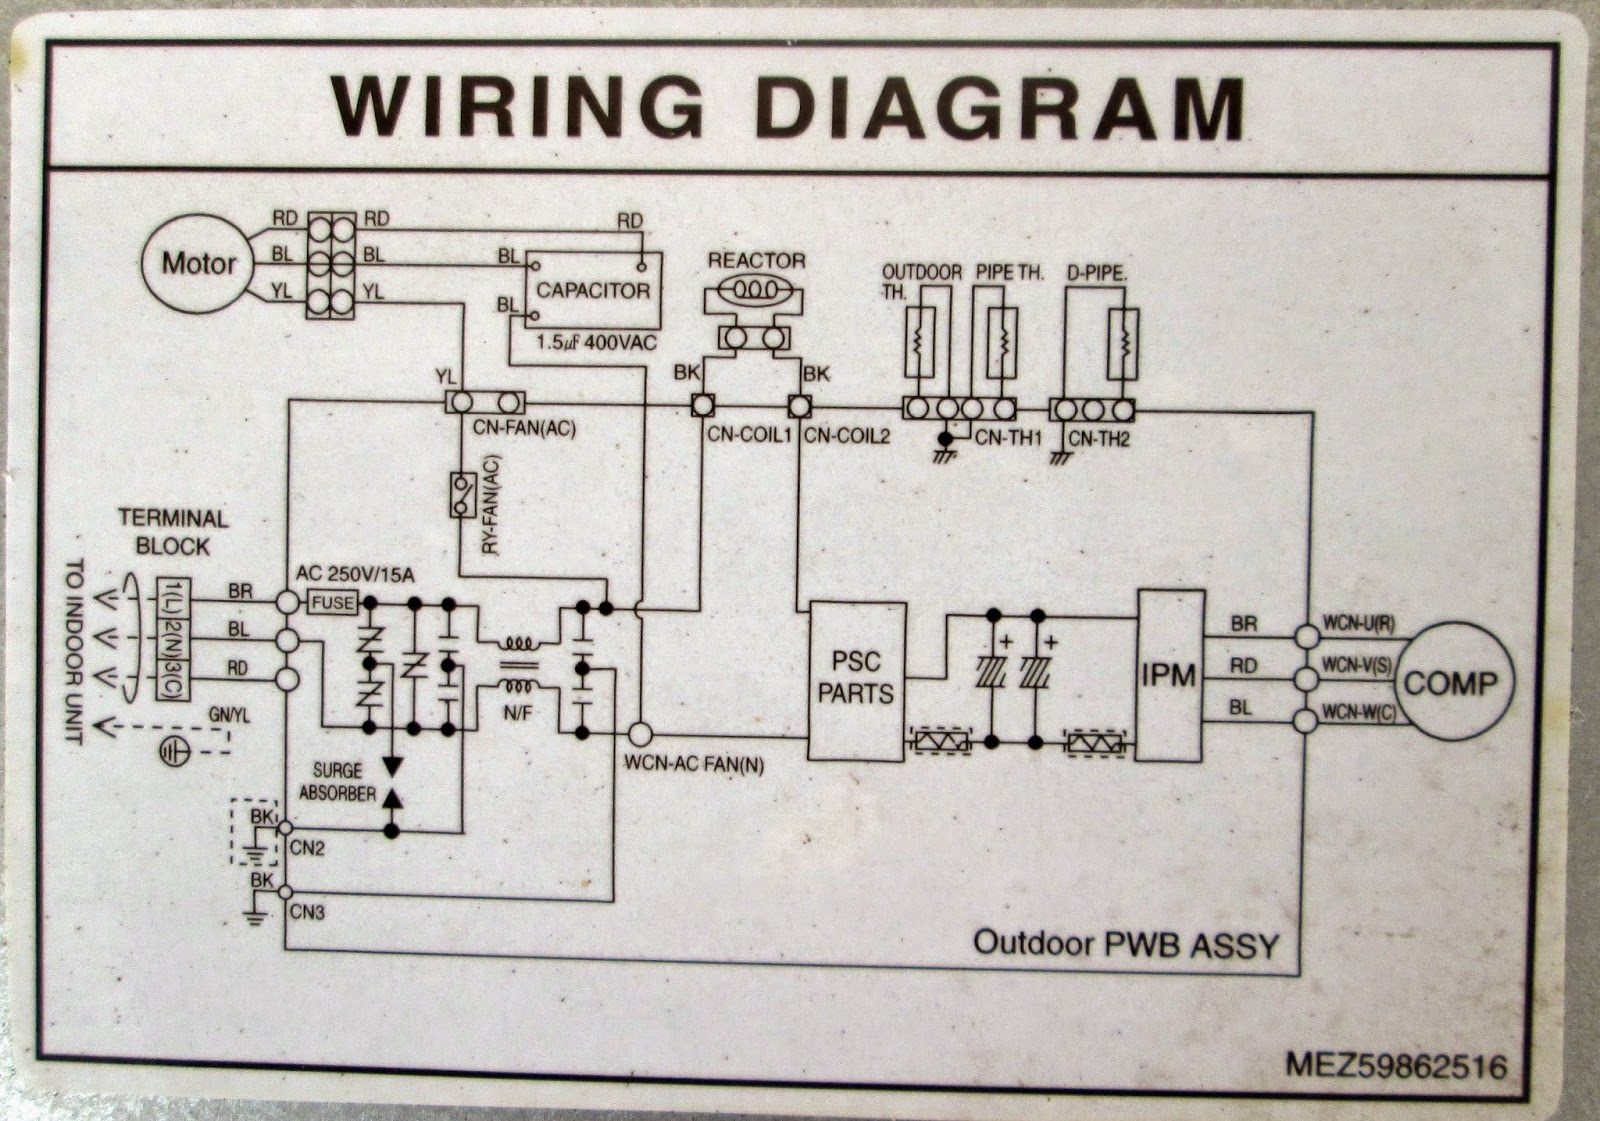 Sharp Air Conditioner Diagram - 4.2.woodmarquetry.de • on air conditioner functions, air conditioner line drawing, basic refrigeration cycle diagram, air handler diagram, air conditioner outlet, air conditioner process, air conditioning components diagram, truck in air conditioning wiring diagram, air conditioner overhead view, electric hot water tank wiring diagram, air conditioner how it works, how air conditioning works diagram, air conditioner troubleshooting, 2006 ford mustang ac wiring diagram, air conditioner plan view, air conditioning system schematic, air conditioner parts, air conditioning cycle diagram, air conditioning cycle basic, air conditioning air flow direction,